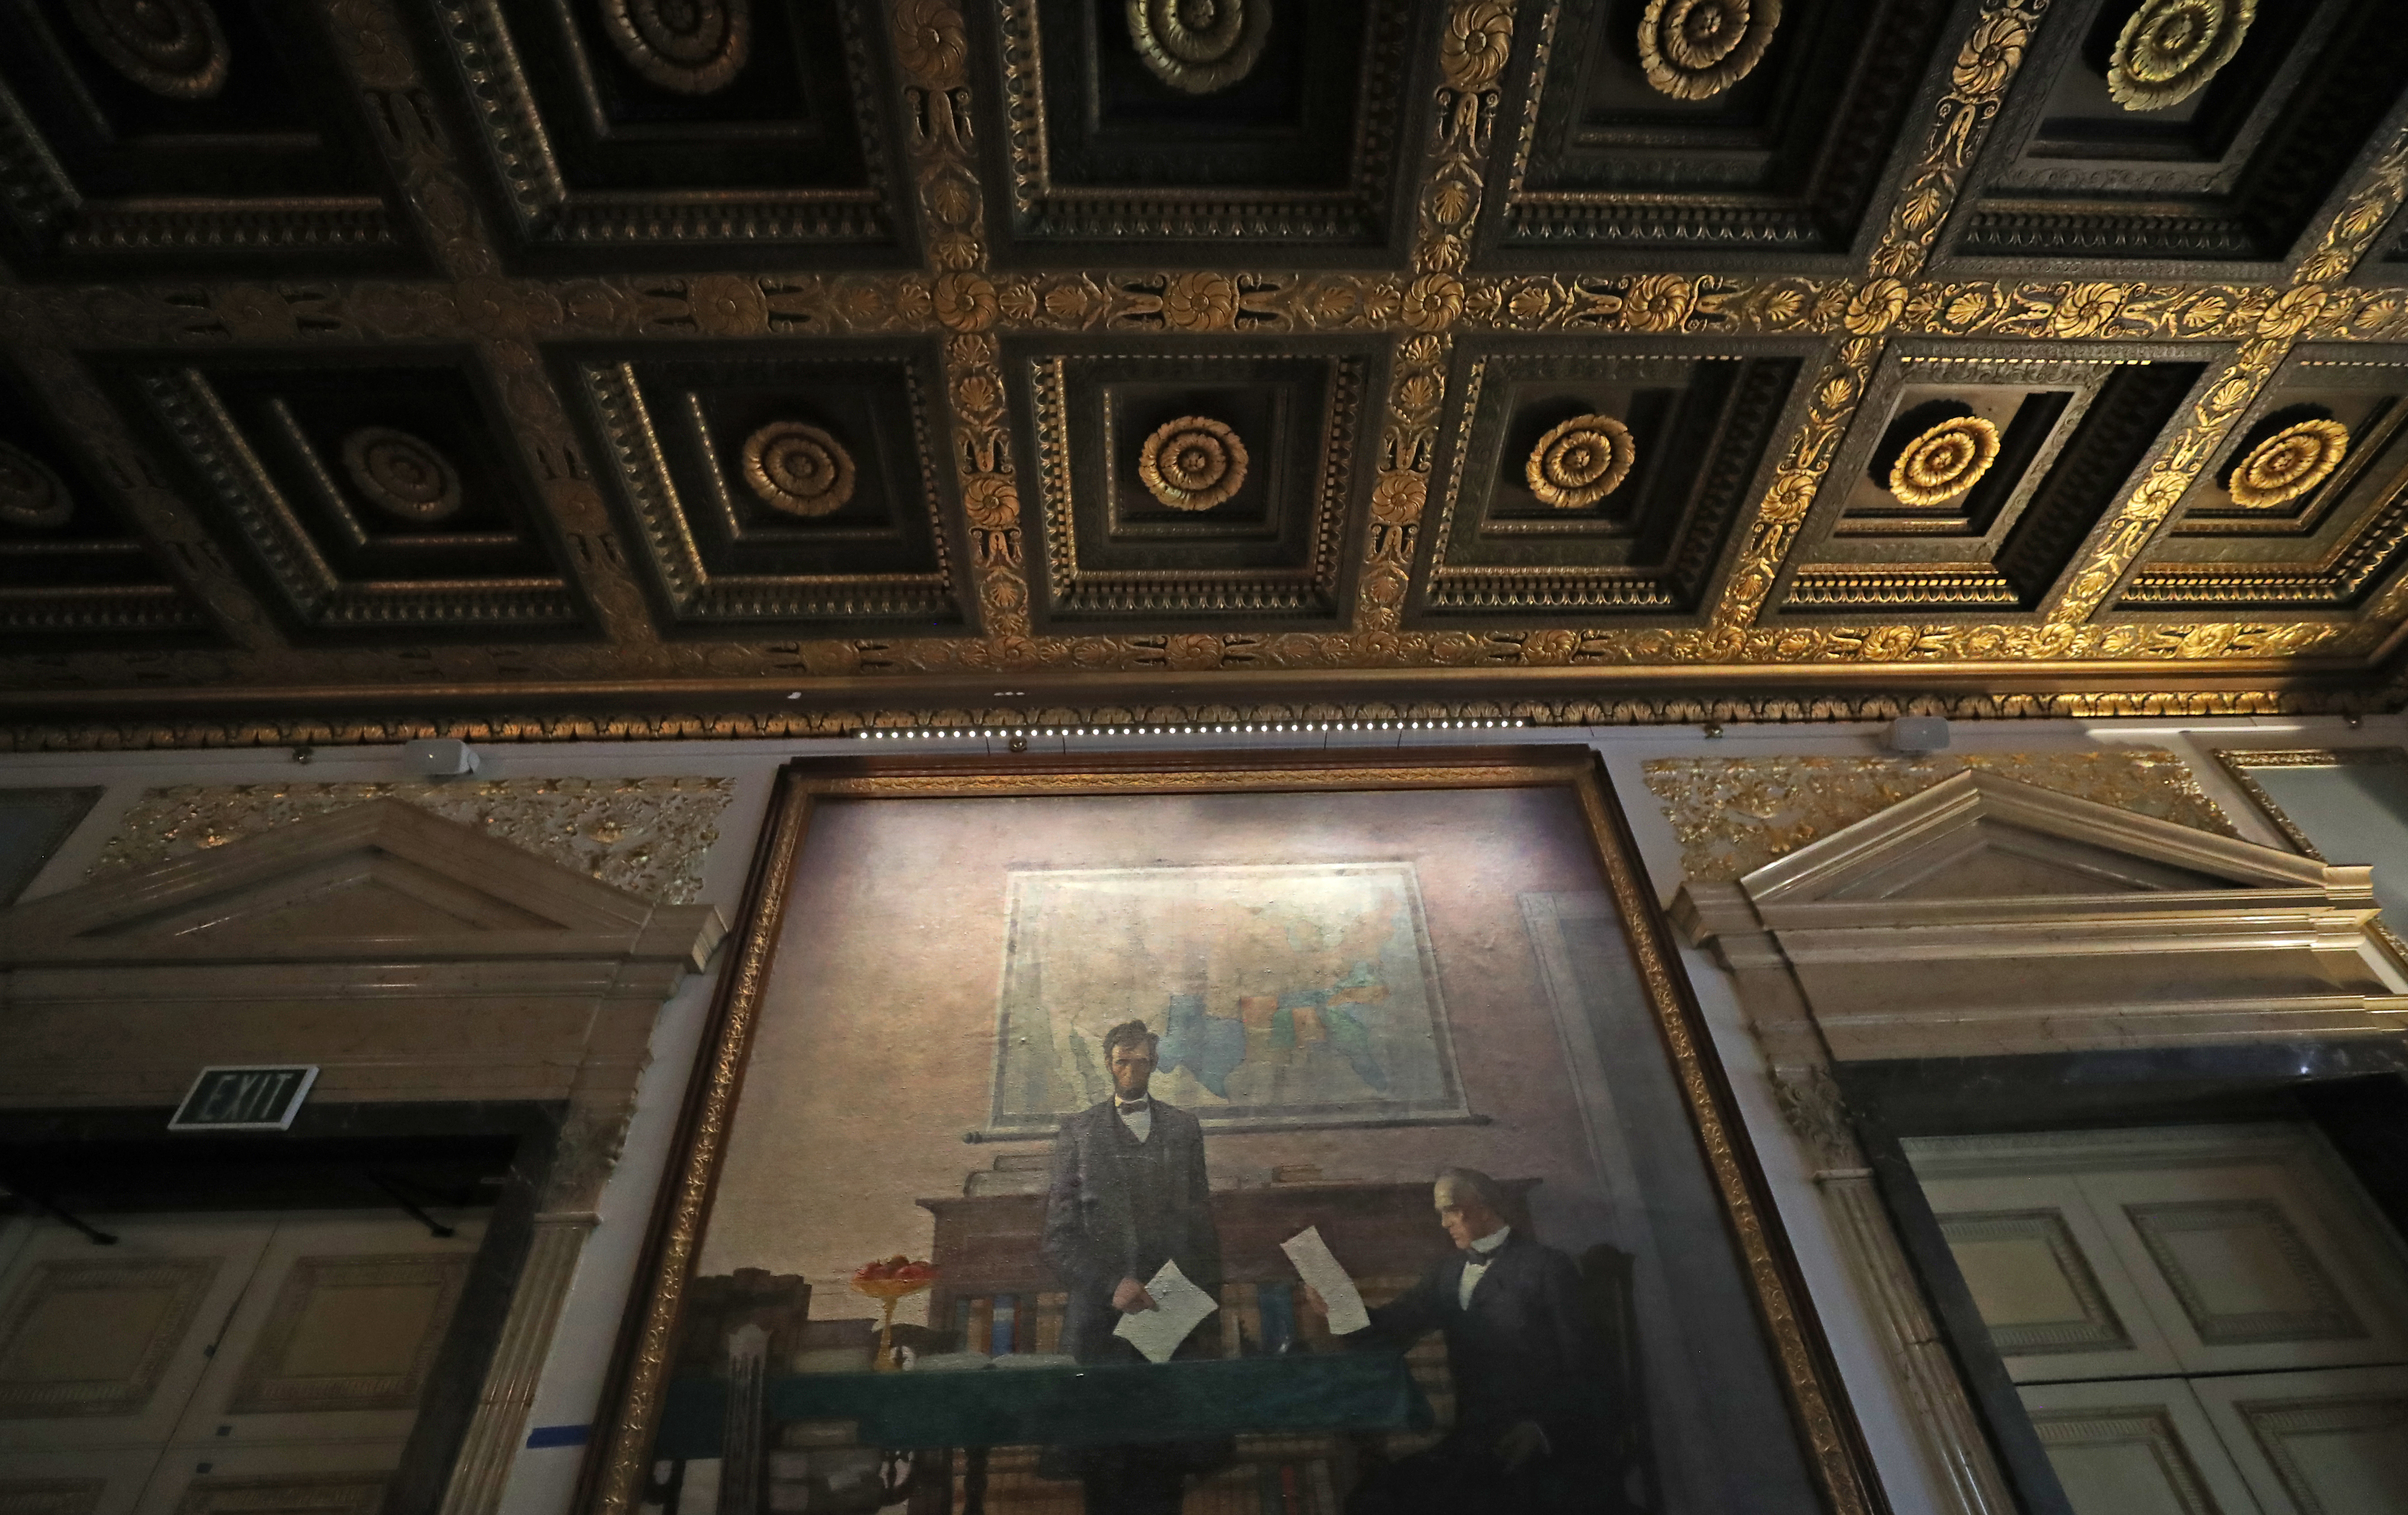 A mural by N.C. Wyeth of President Lincoln on the wall with detail of a gold leaf ceiling, both evocative of the building's history as the former Federal Reserve Bank of Boston.